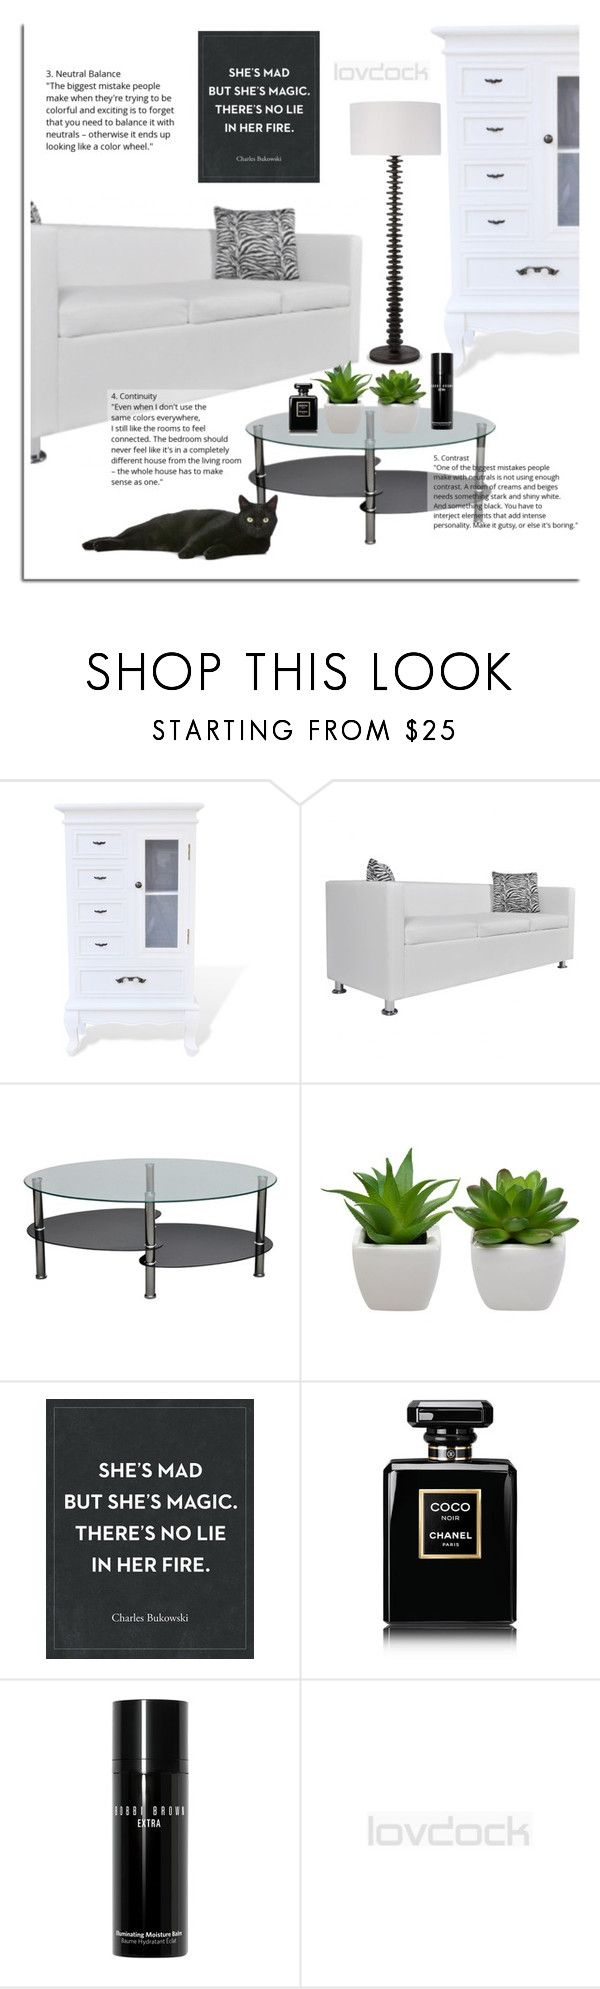 Lovdock by dora04 on Polyvore featuring interior, interiors, interior design, home, home decor, interior decorating, Chanel, Bobbi Brown Cosmetics and lovdock